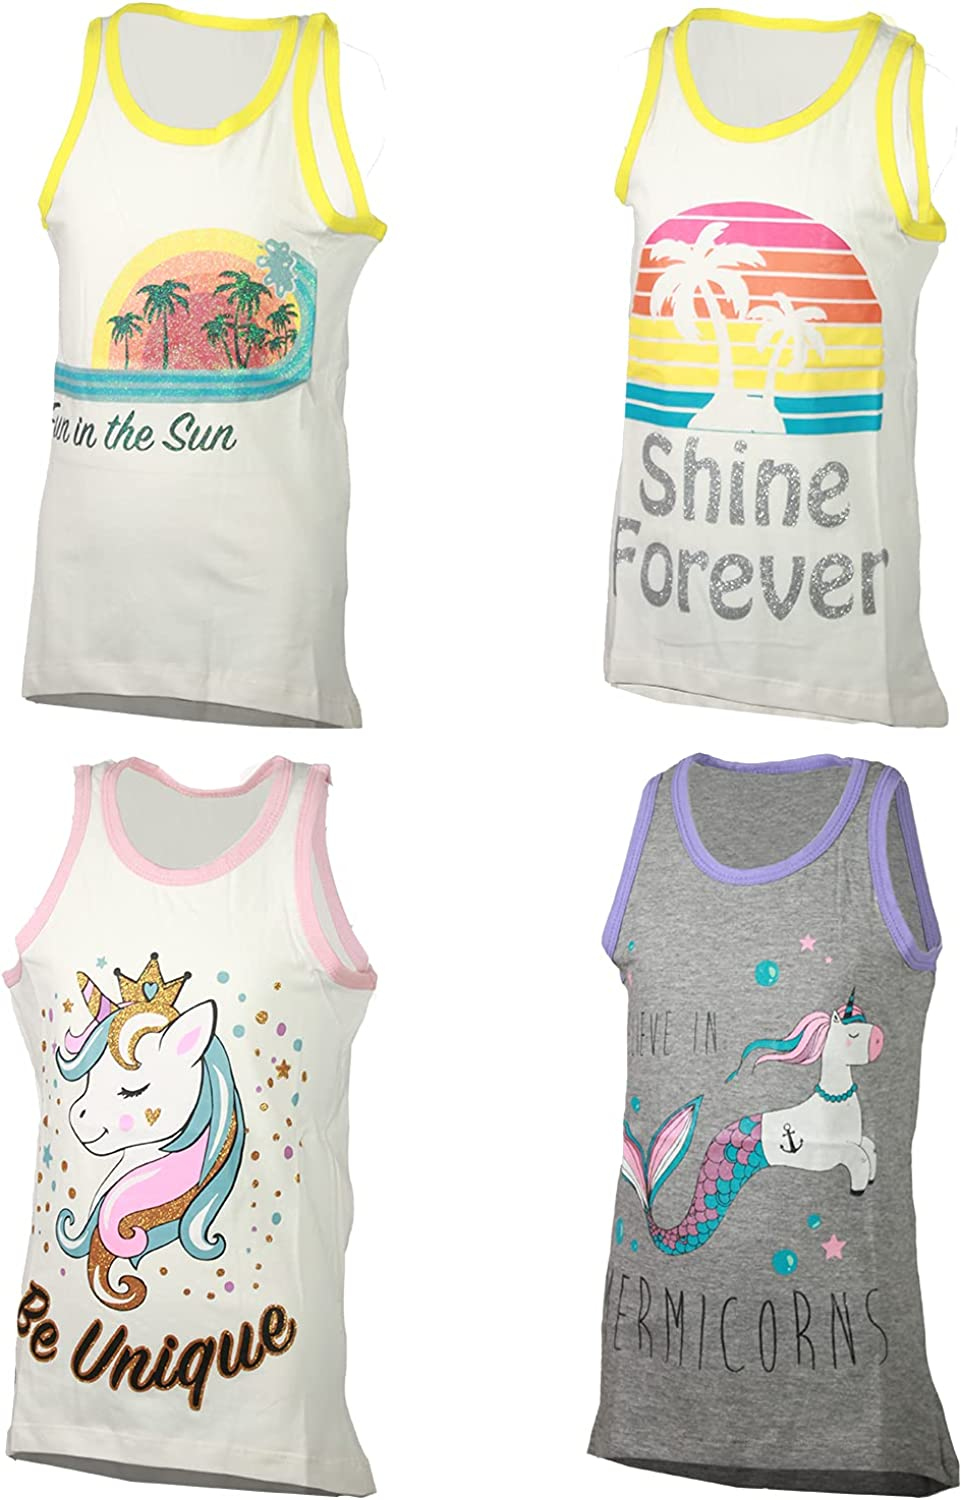 MISS POPULAR Max 58% OFF 4-Pack Girls Sleeveless Summ Designs Tops Cute Limited time trial price Tank